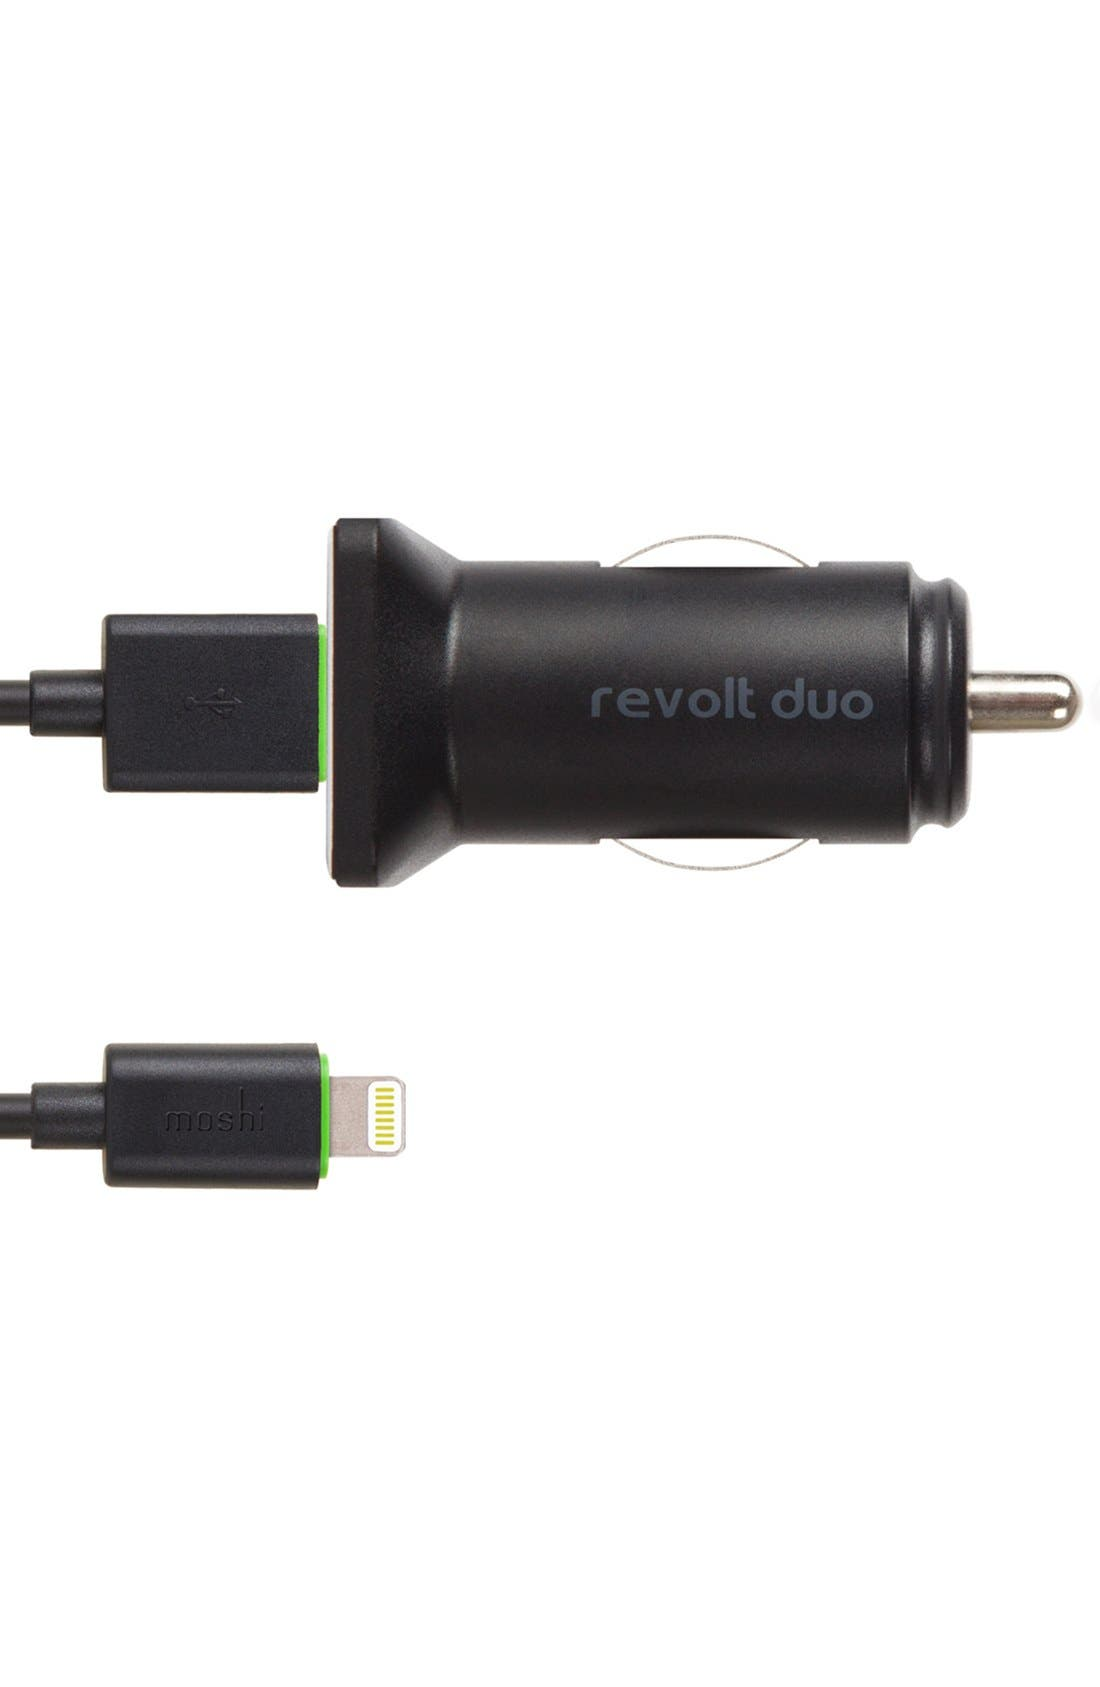 Main Image - Moshi 'Revolt Duo' 20W USB Car Charger with Lightning Cable